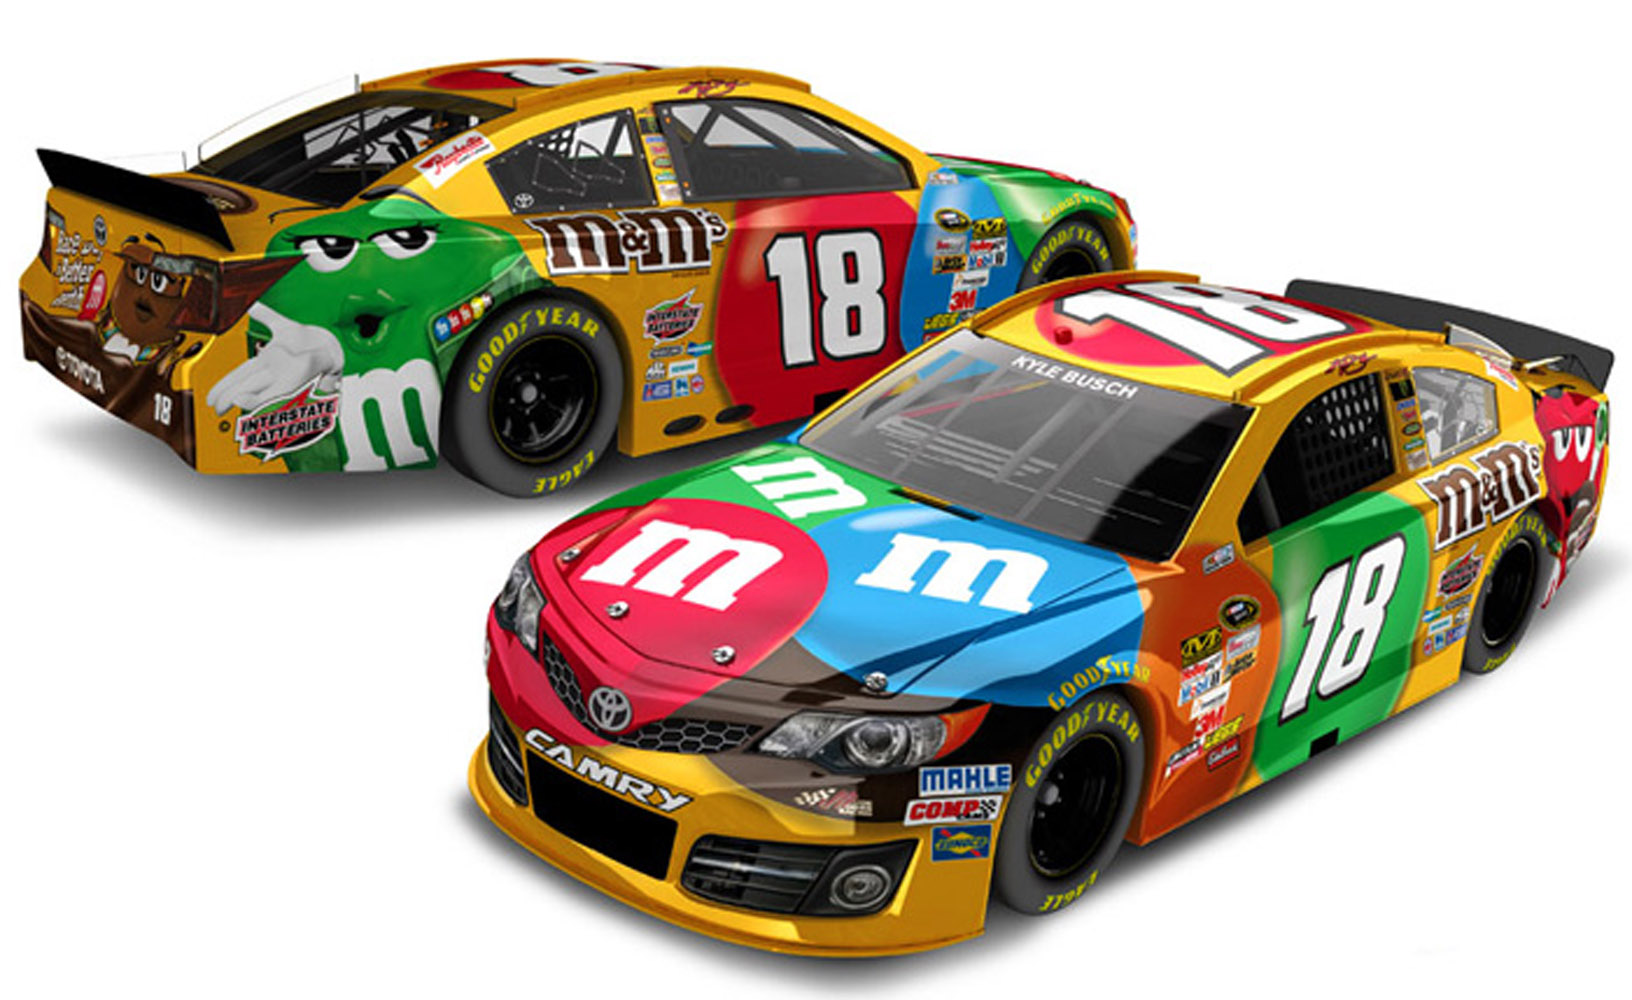 2013 Kyle Busch #18 M&M's 1:24 Diecast Car